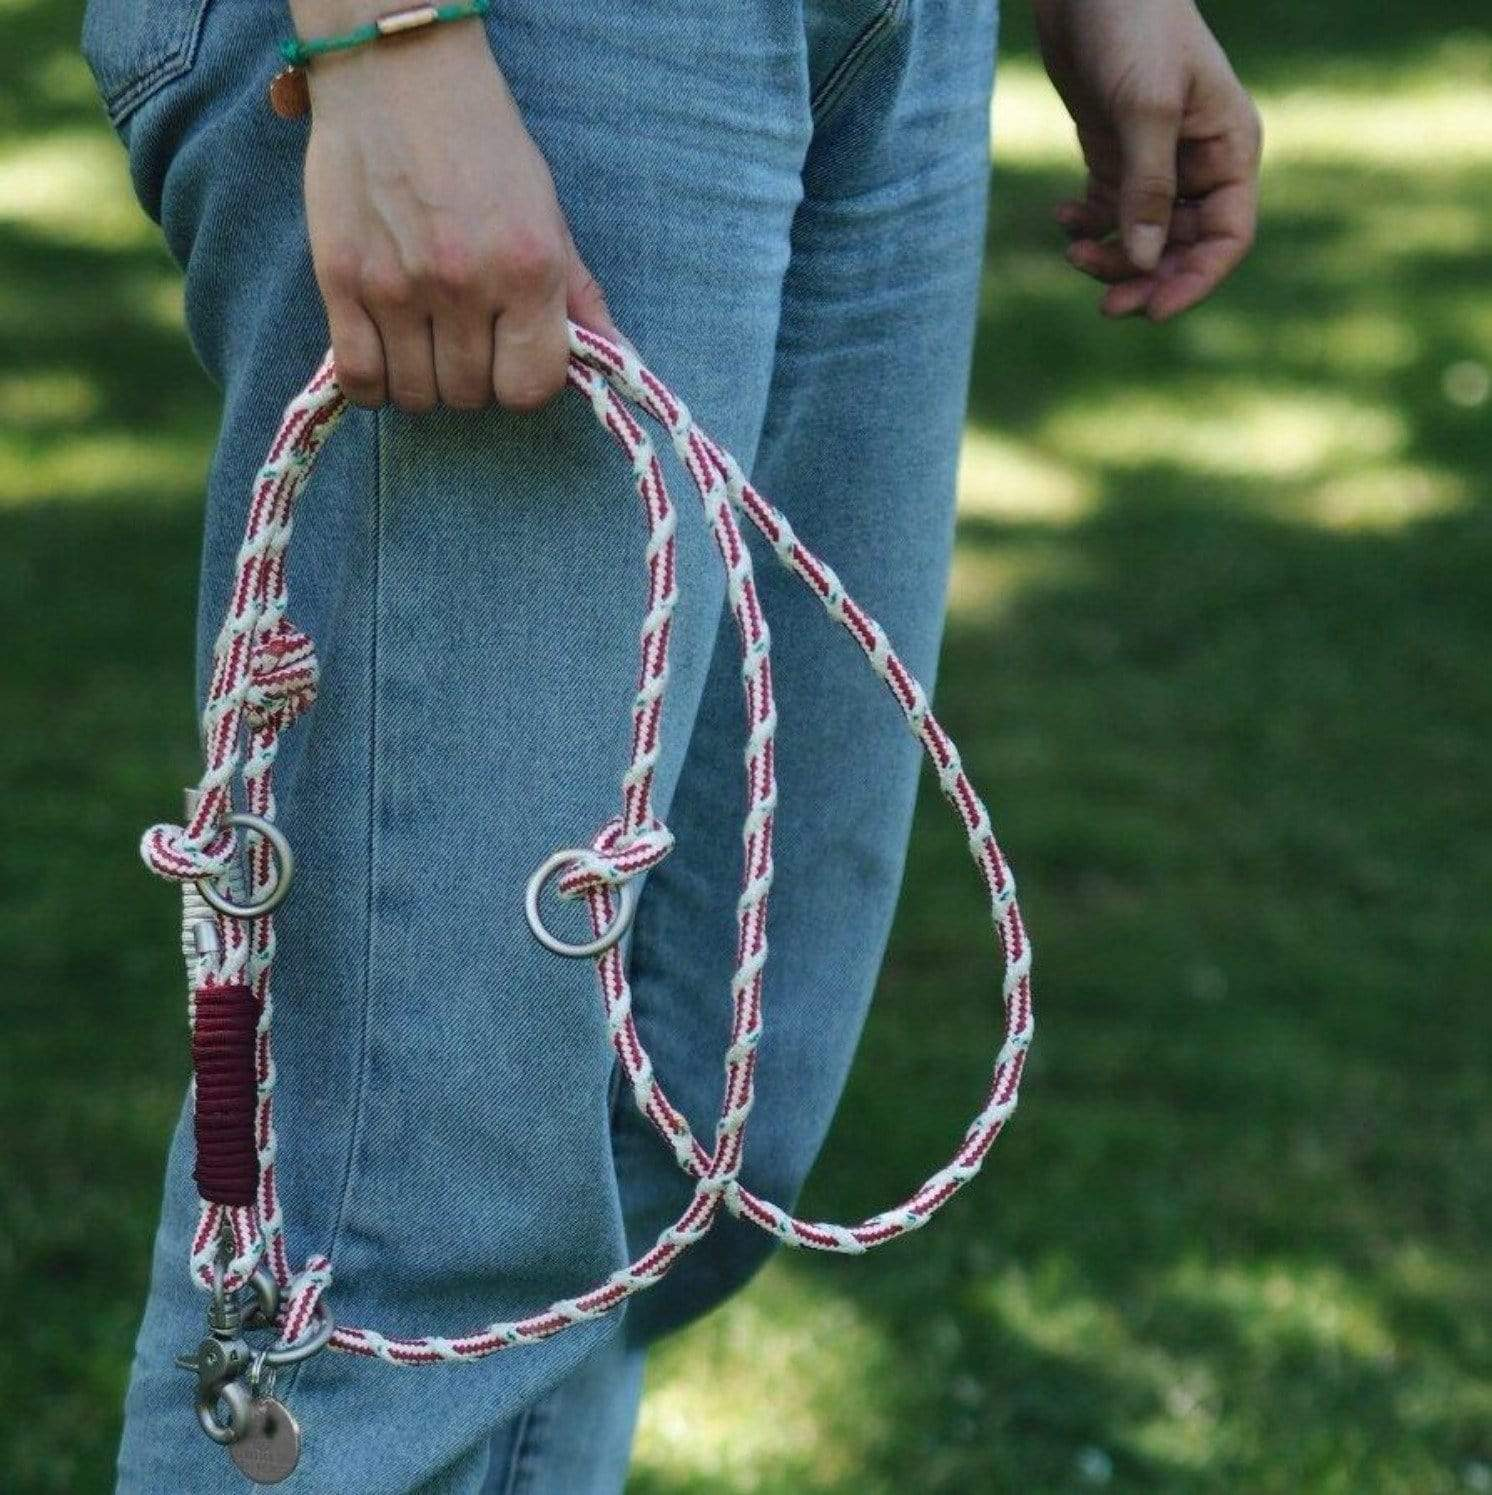 Bracenet, sustainable and plastic free dog leash, eco friendly made of old fishing nets, in red and white